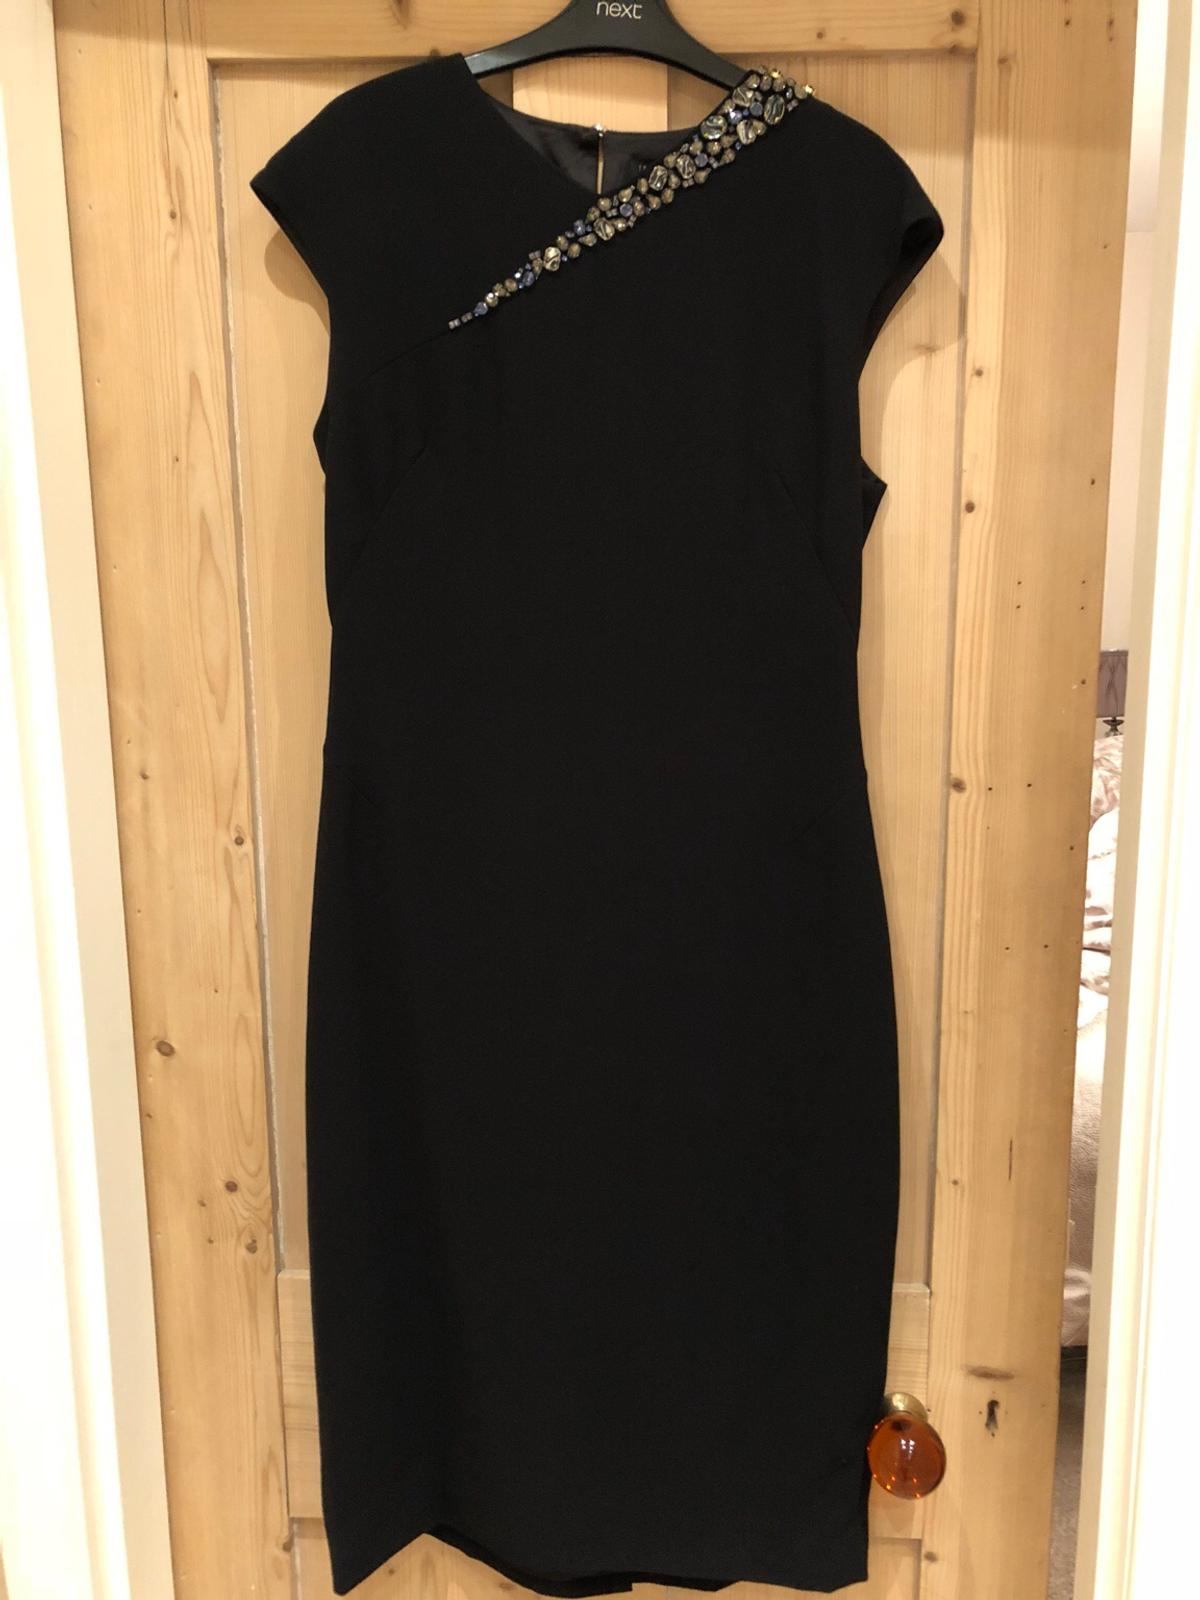 3d90b9fa1 Ted Baker Floray Cutout Dress size 14 16 in RH2 Banstead for £20.00 ...